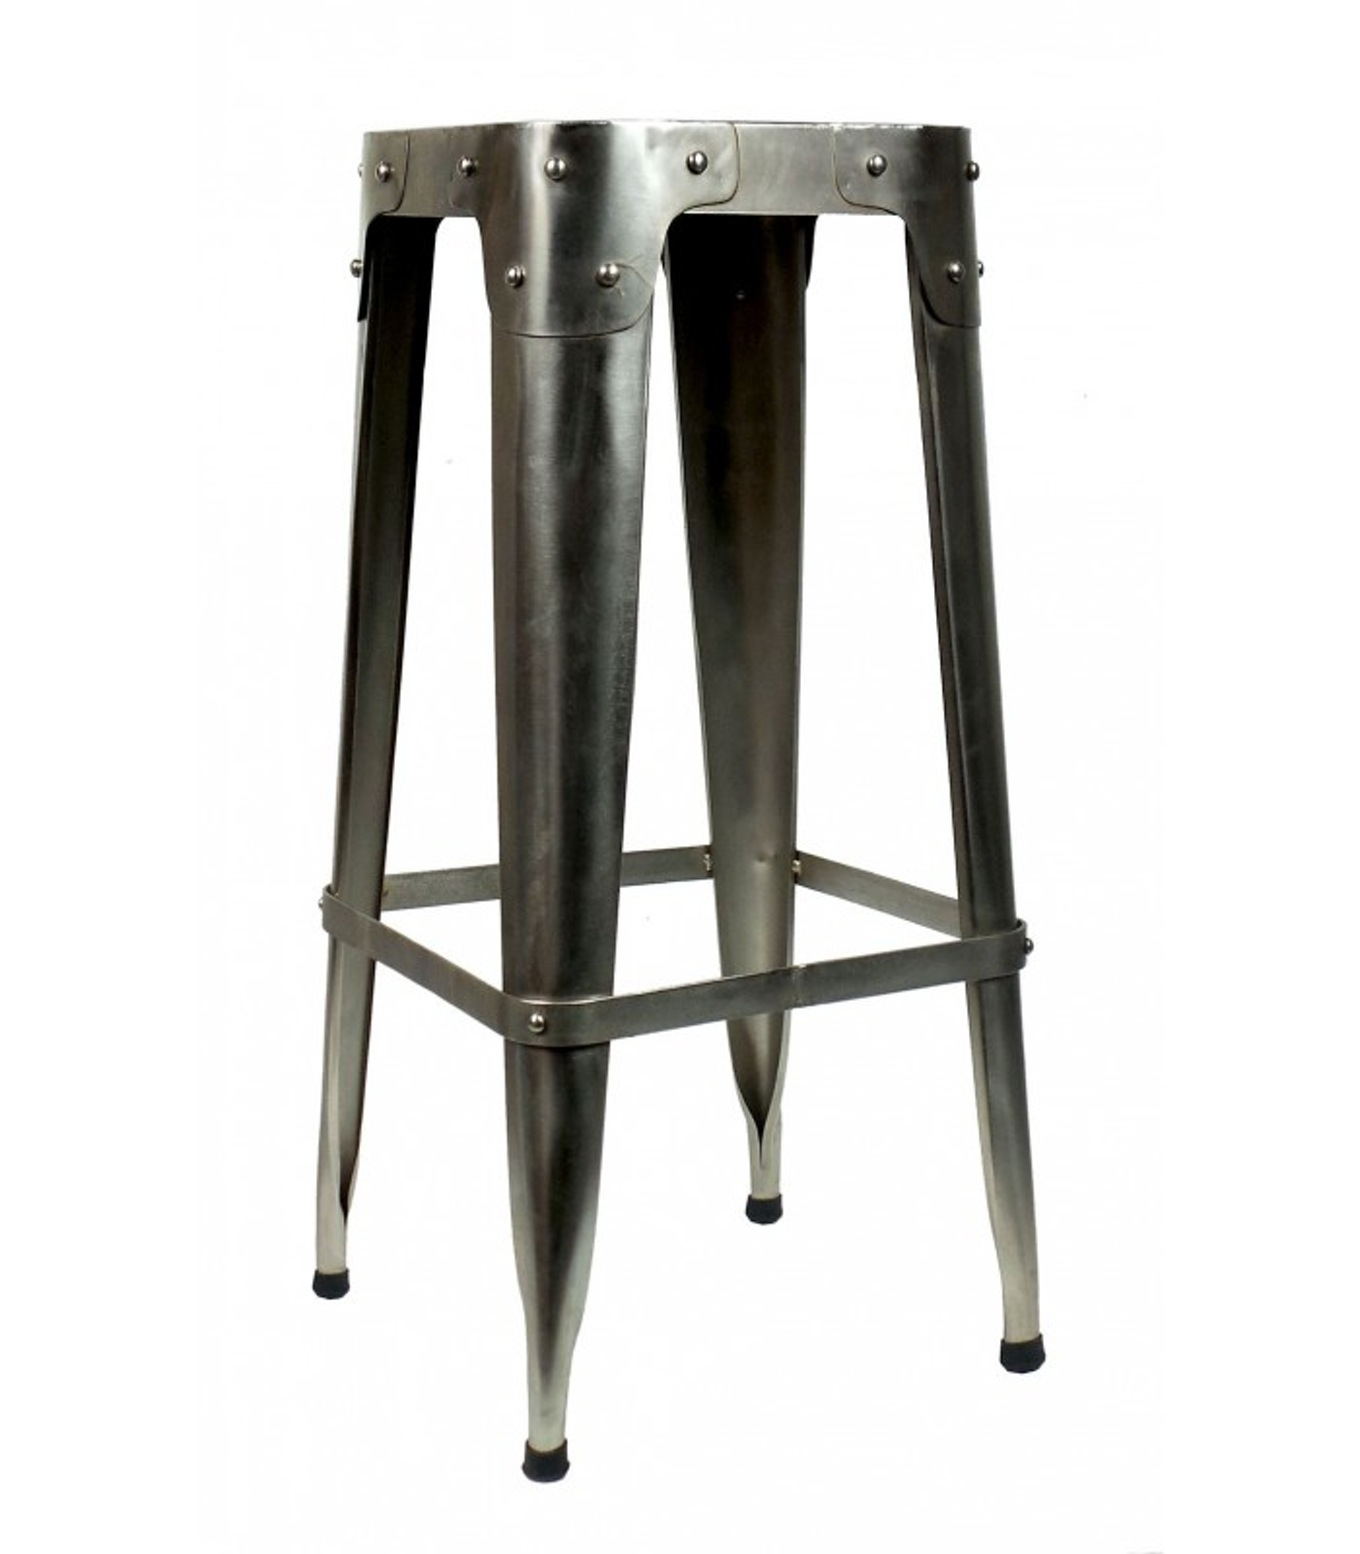 Tabourets Metal Amazon Tabouret De Bar Industriel Amazon Idée Pour La Maison Et Cuisine